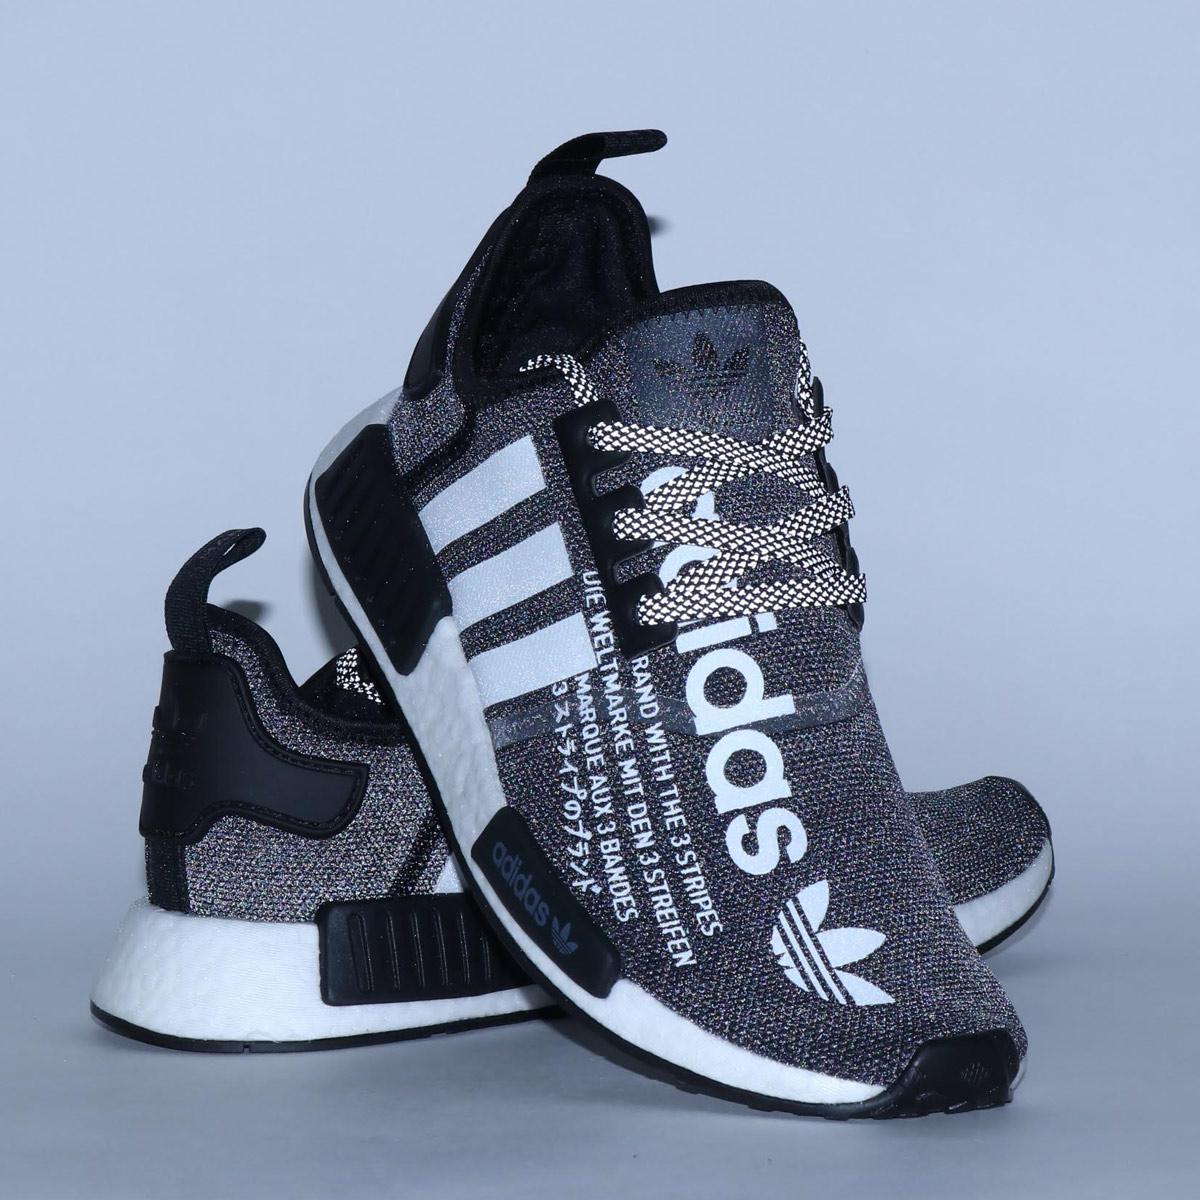 adidas-nmd-r1-atmos-g27331-release-20181117